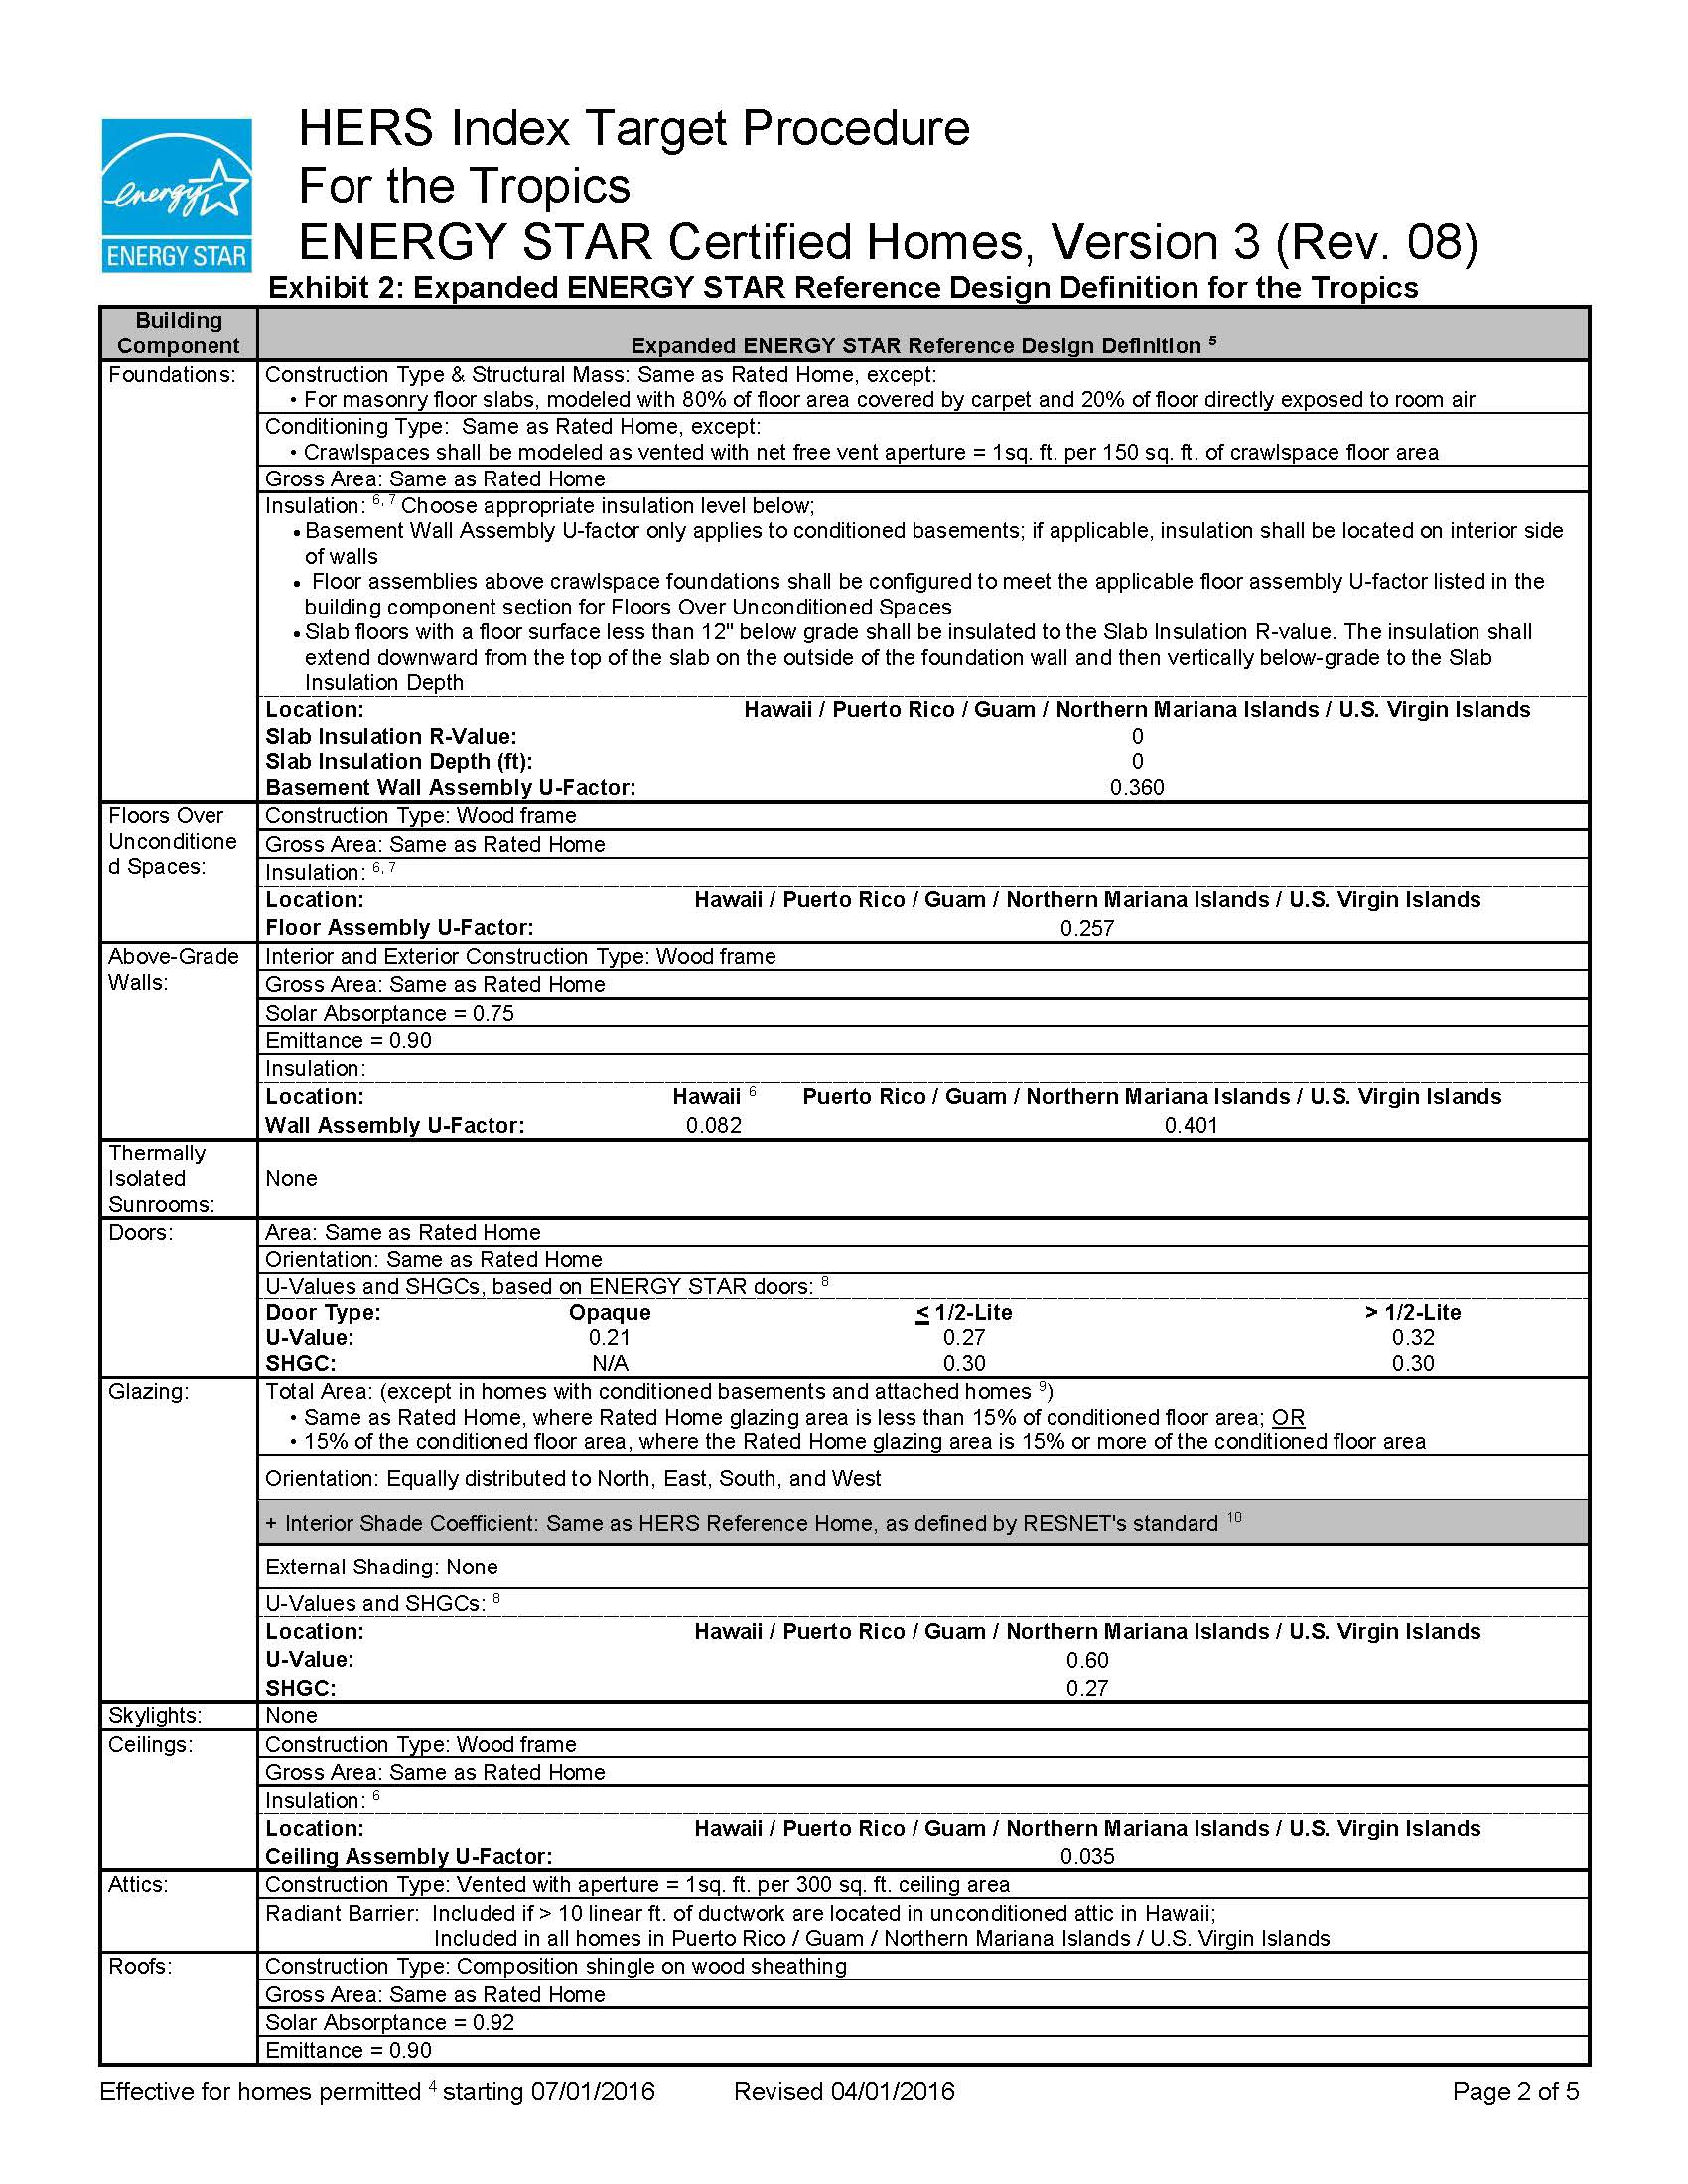 Page 1 of ENERGY STAR Homes Version 3 Energy Rating Index Target Procedure for the Tropics